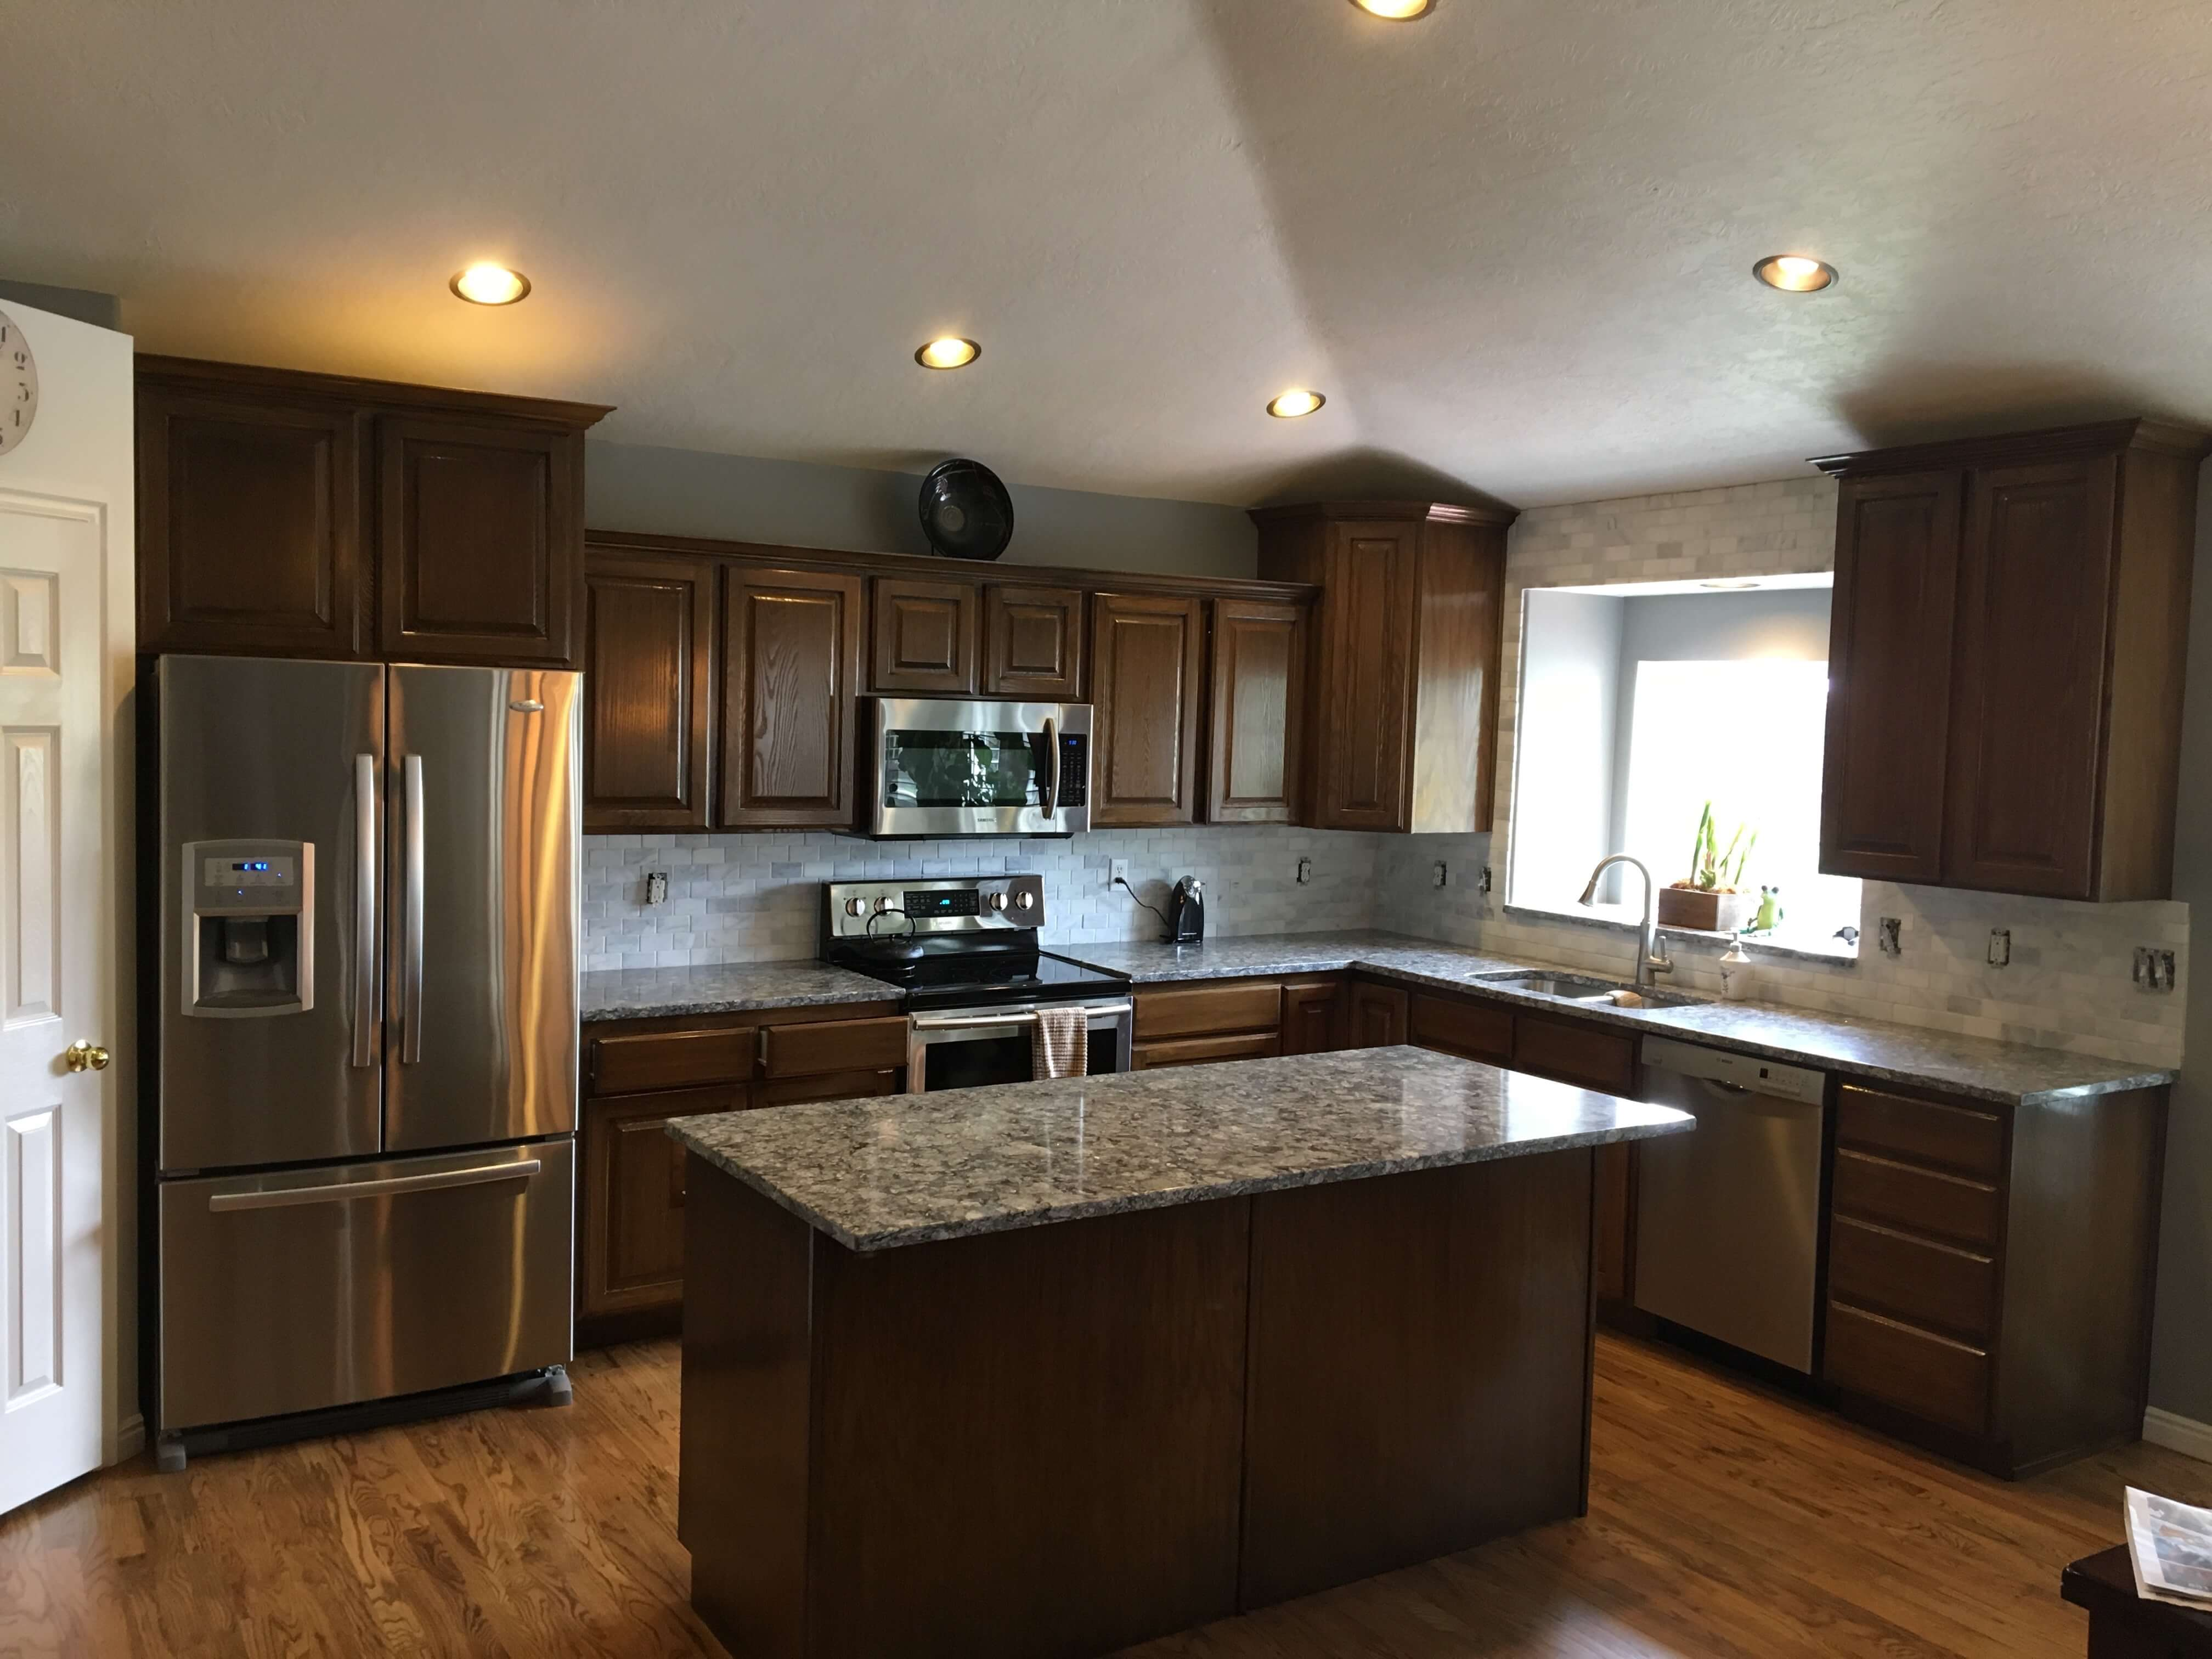 salt lake city cabinet refinishing before and after